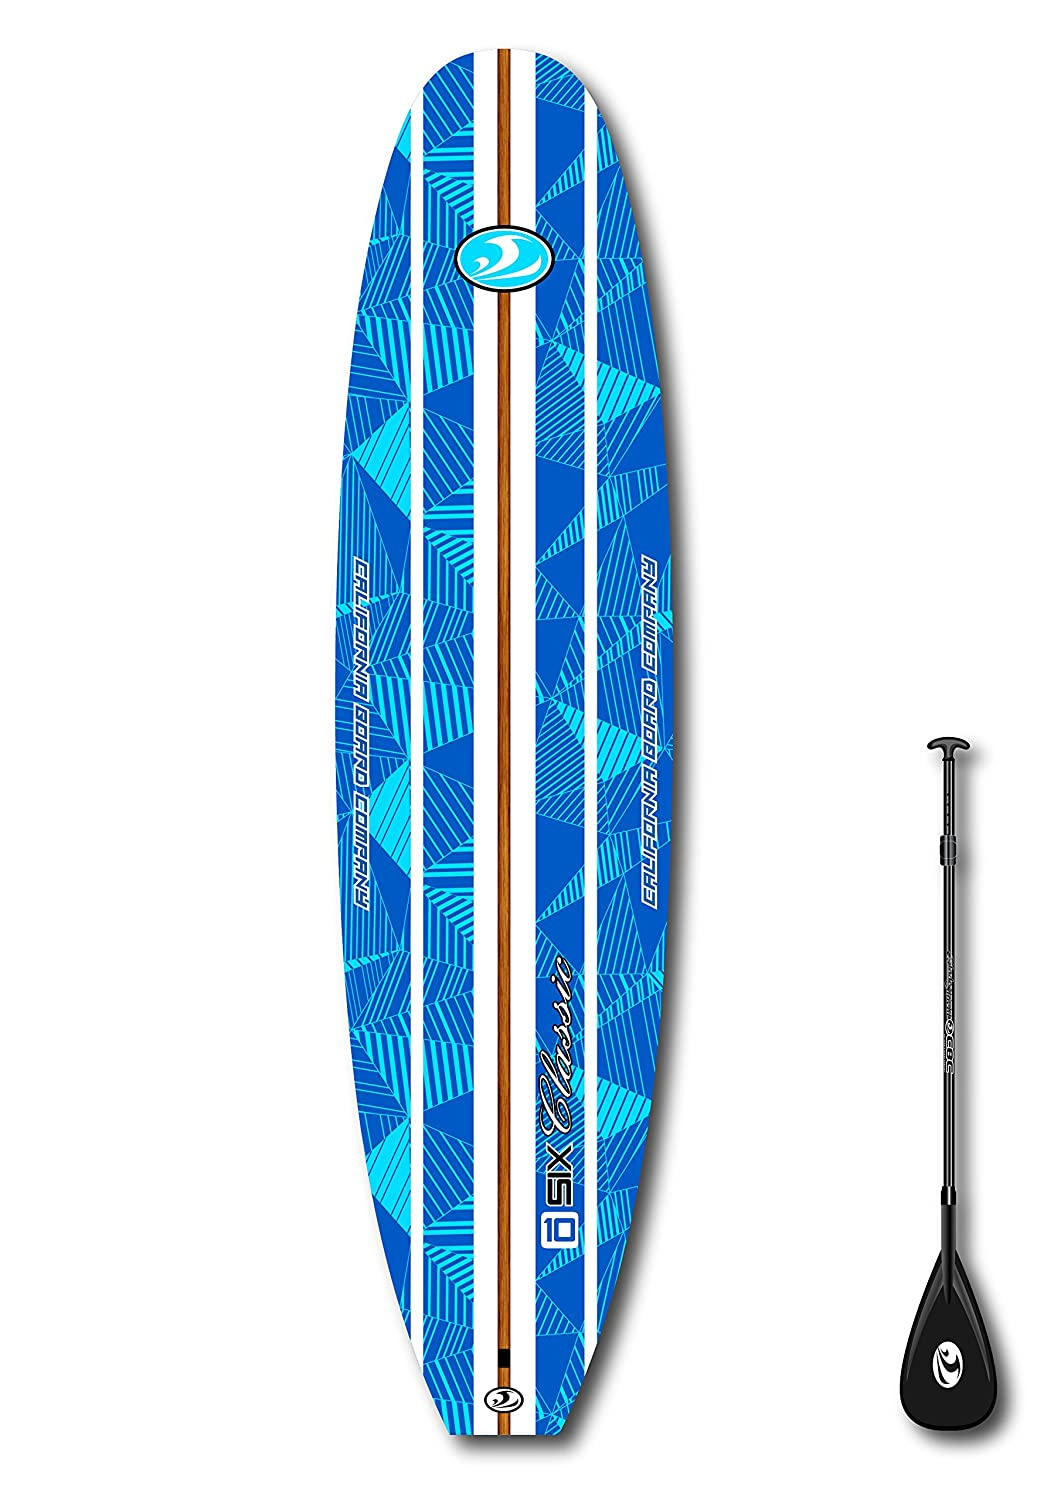 California Board Company SUP Review